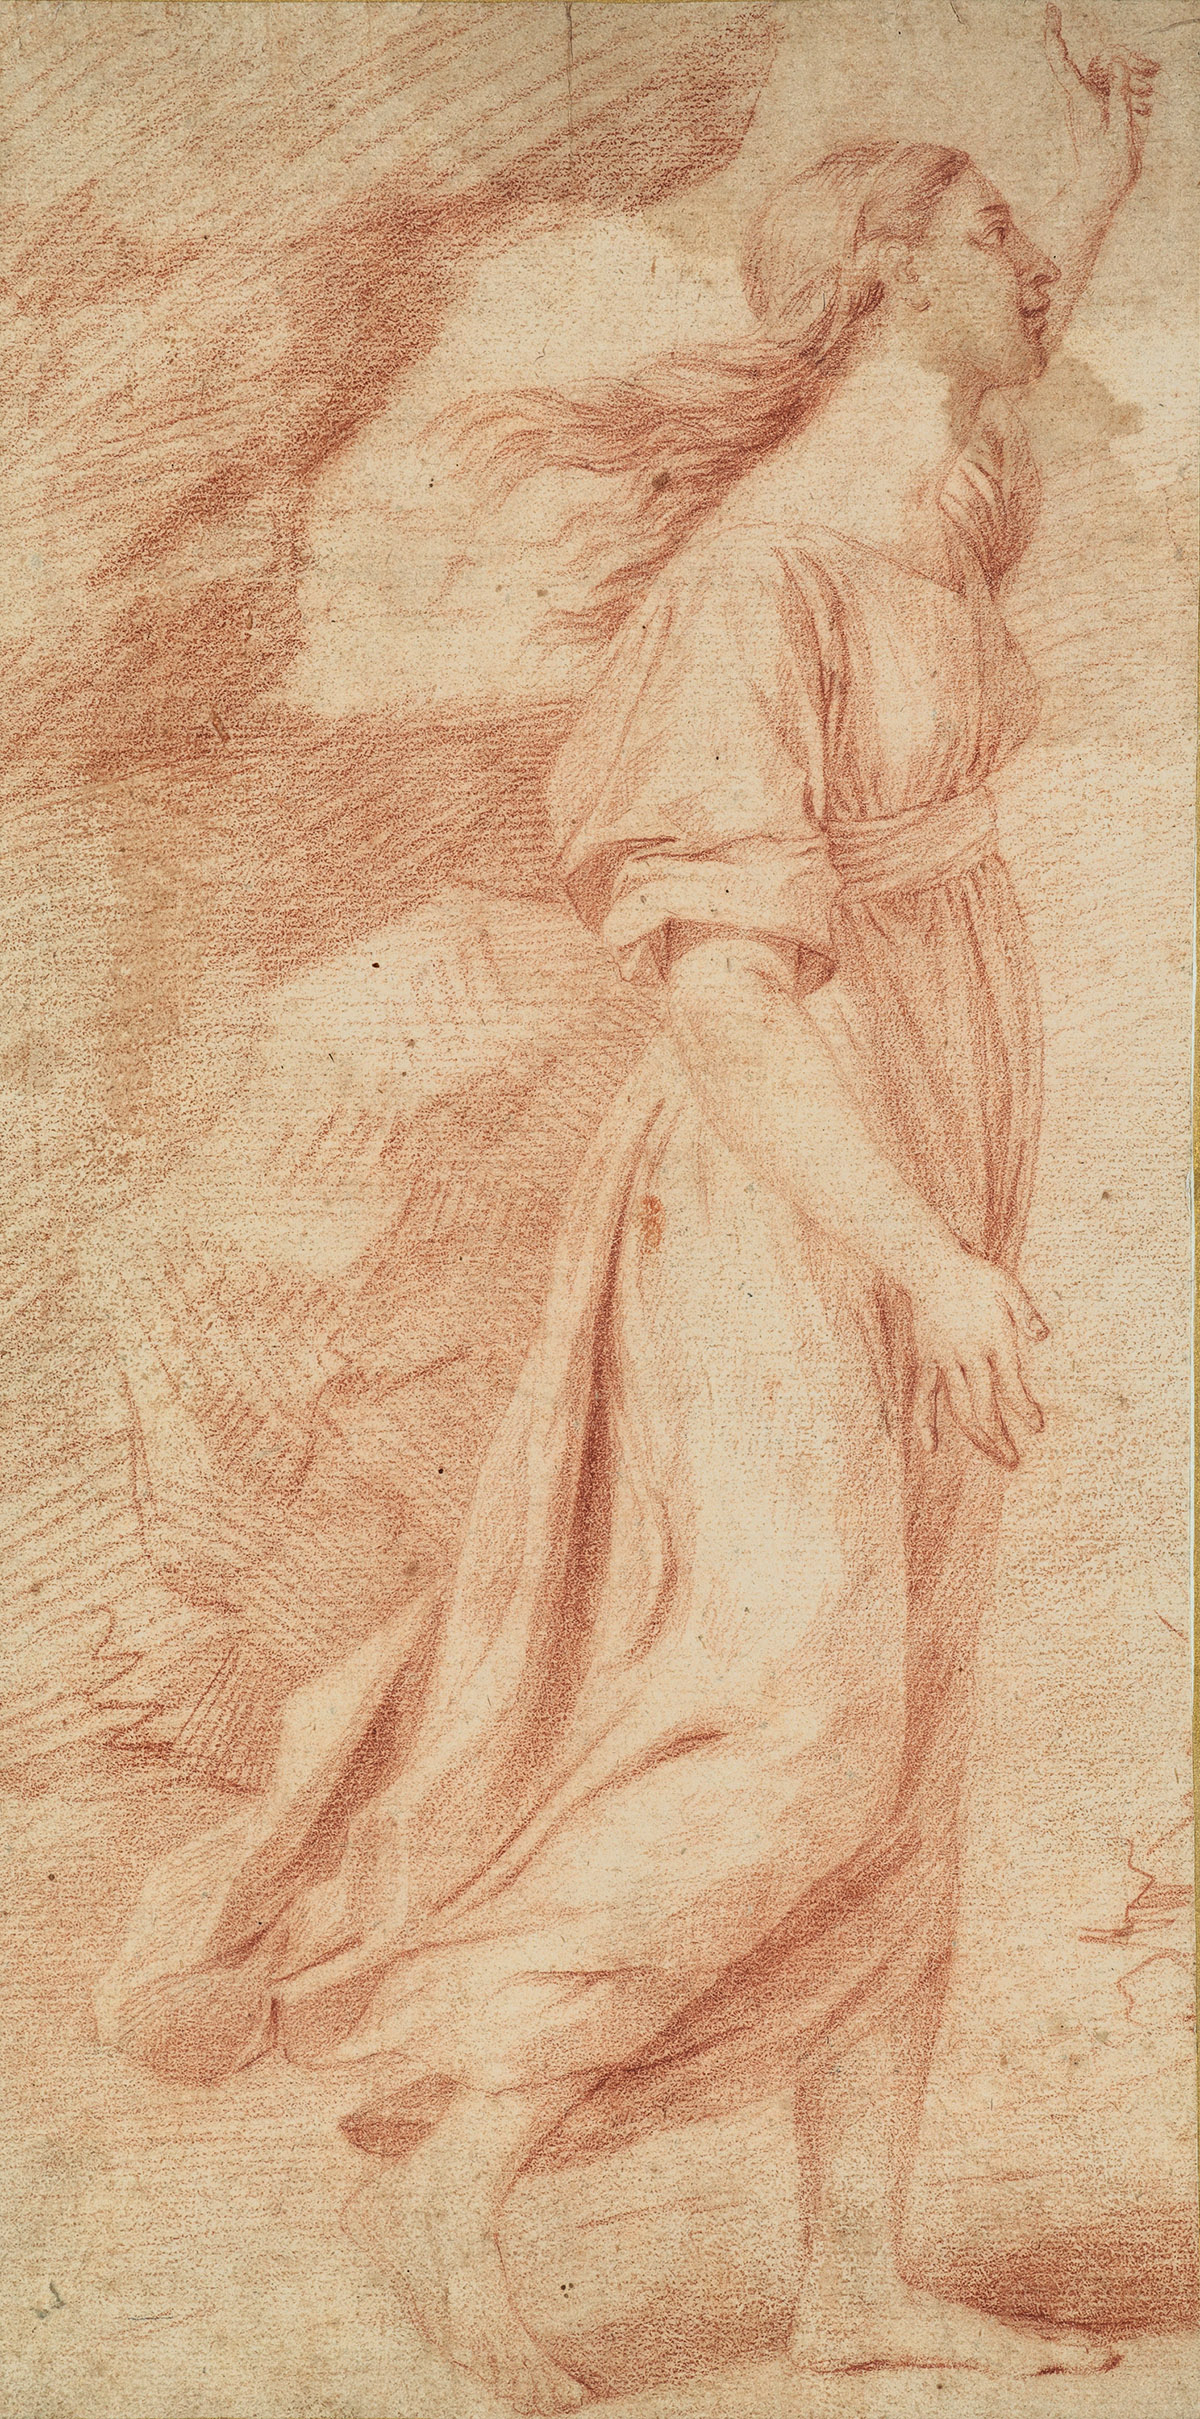 FRENCH-SCHOOL-17TH-CENTURY-A-Woman-Walking-to-the-Right-in-P